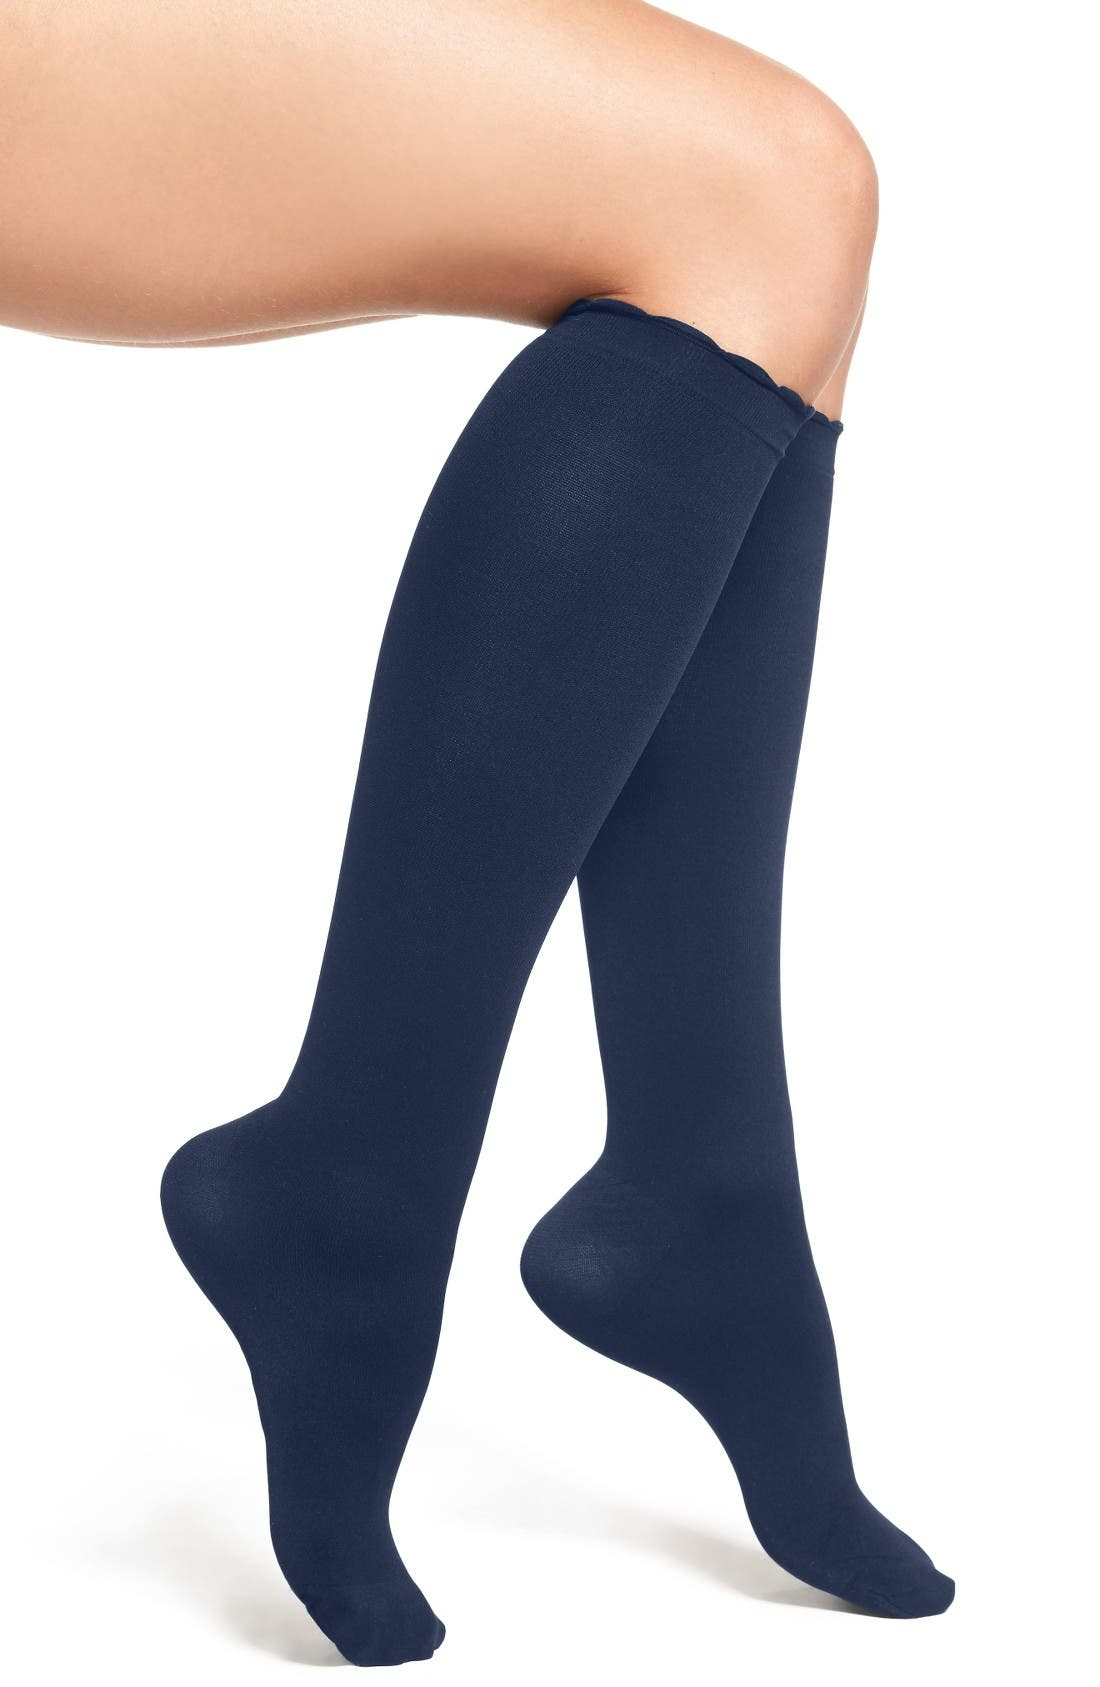 Compression Trouser Socks,                         Main,                         color, Navy